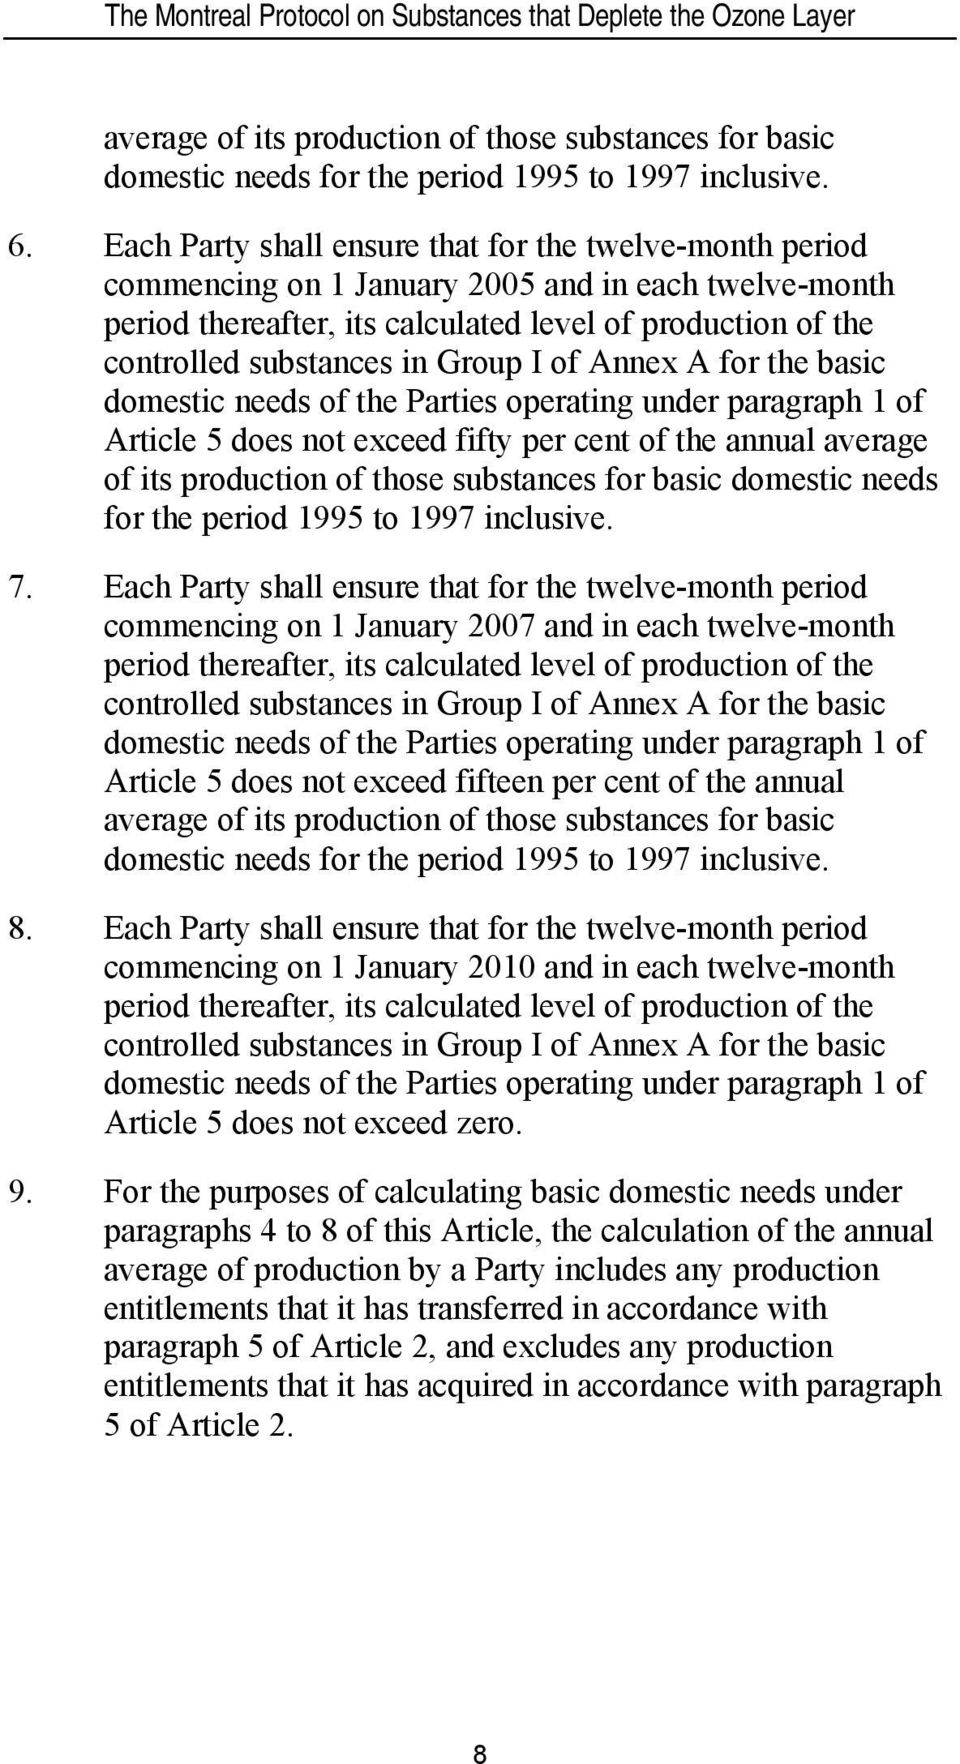 Group I of Annex A for the basic domestic needs of the Parties operating under paragraph 1 of Article 5 does not exceed fifty per cent of the annual average of its production of those substances for